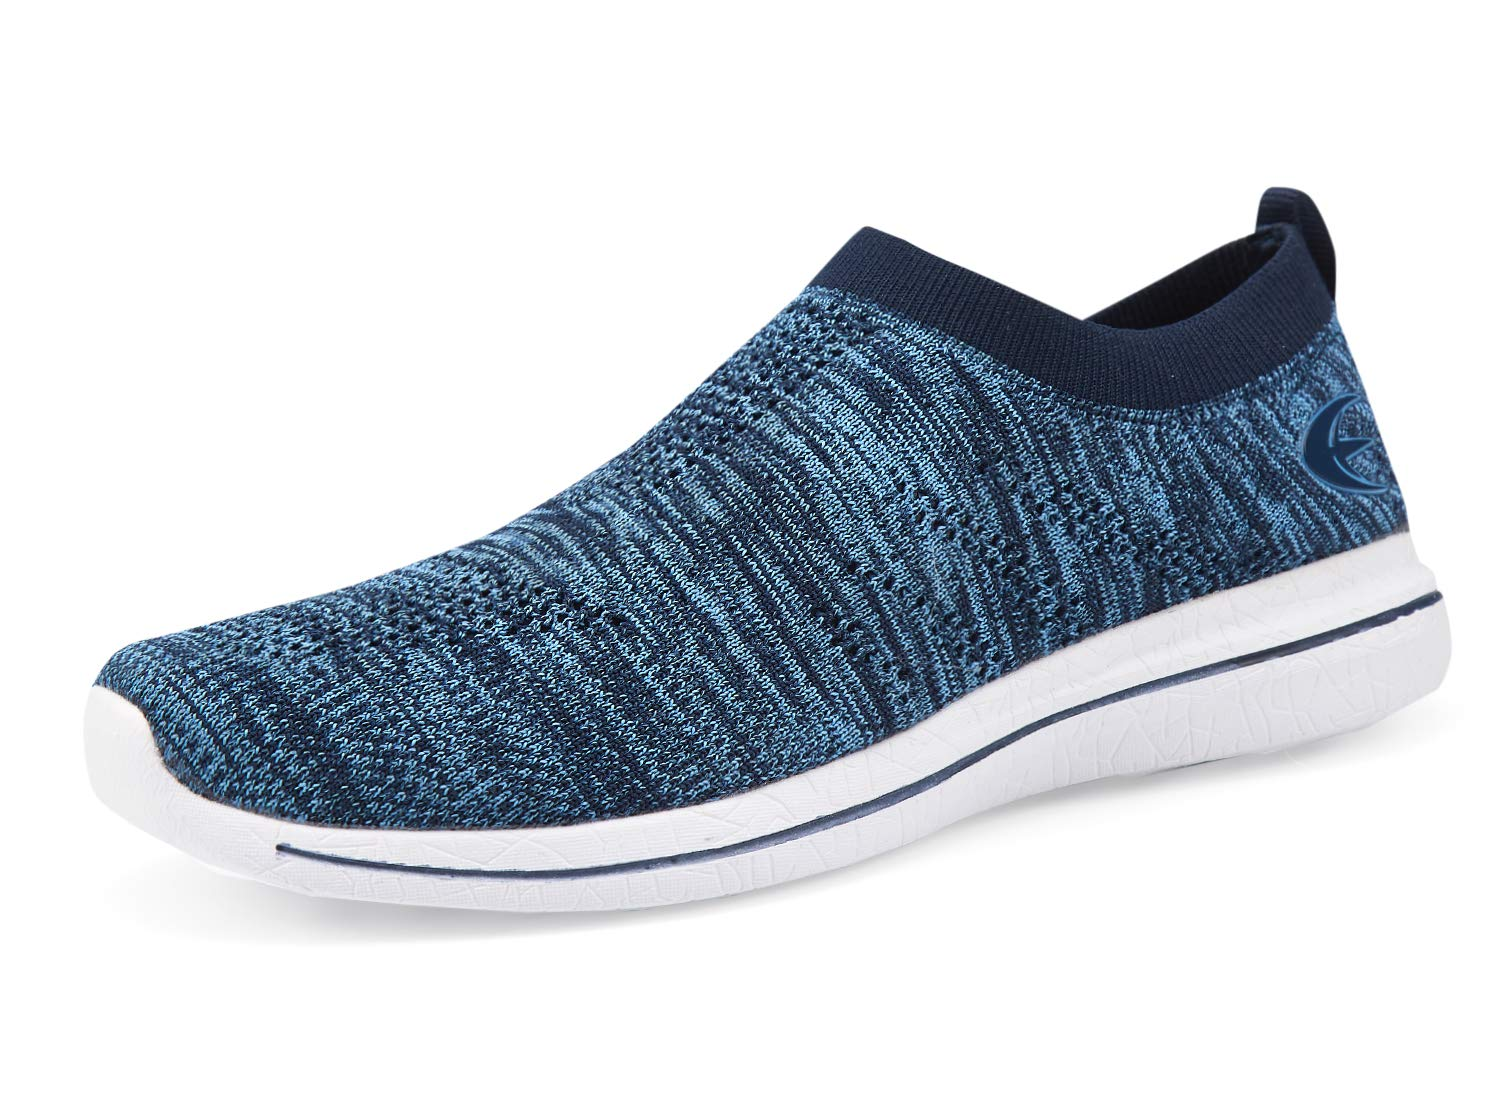 Women's Slip-On Sneakers Mesh Loafer Casual Beach Street Walking Shoes (7 B(M) US, Blue/White) by Leader shoes (Image #1)